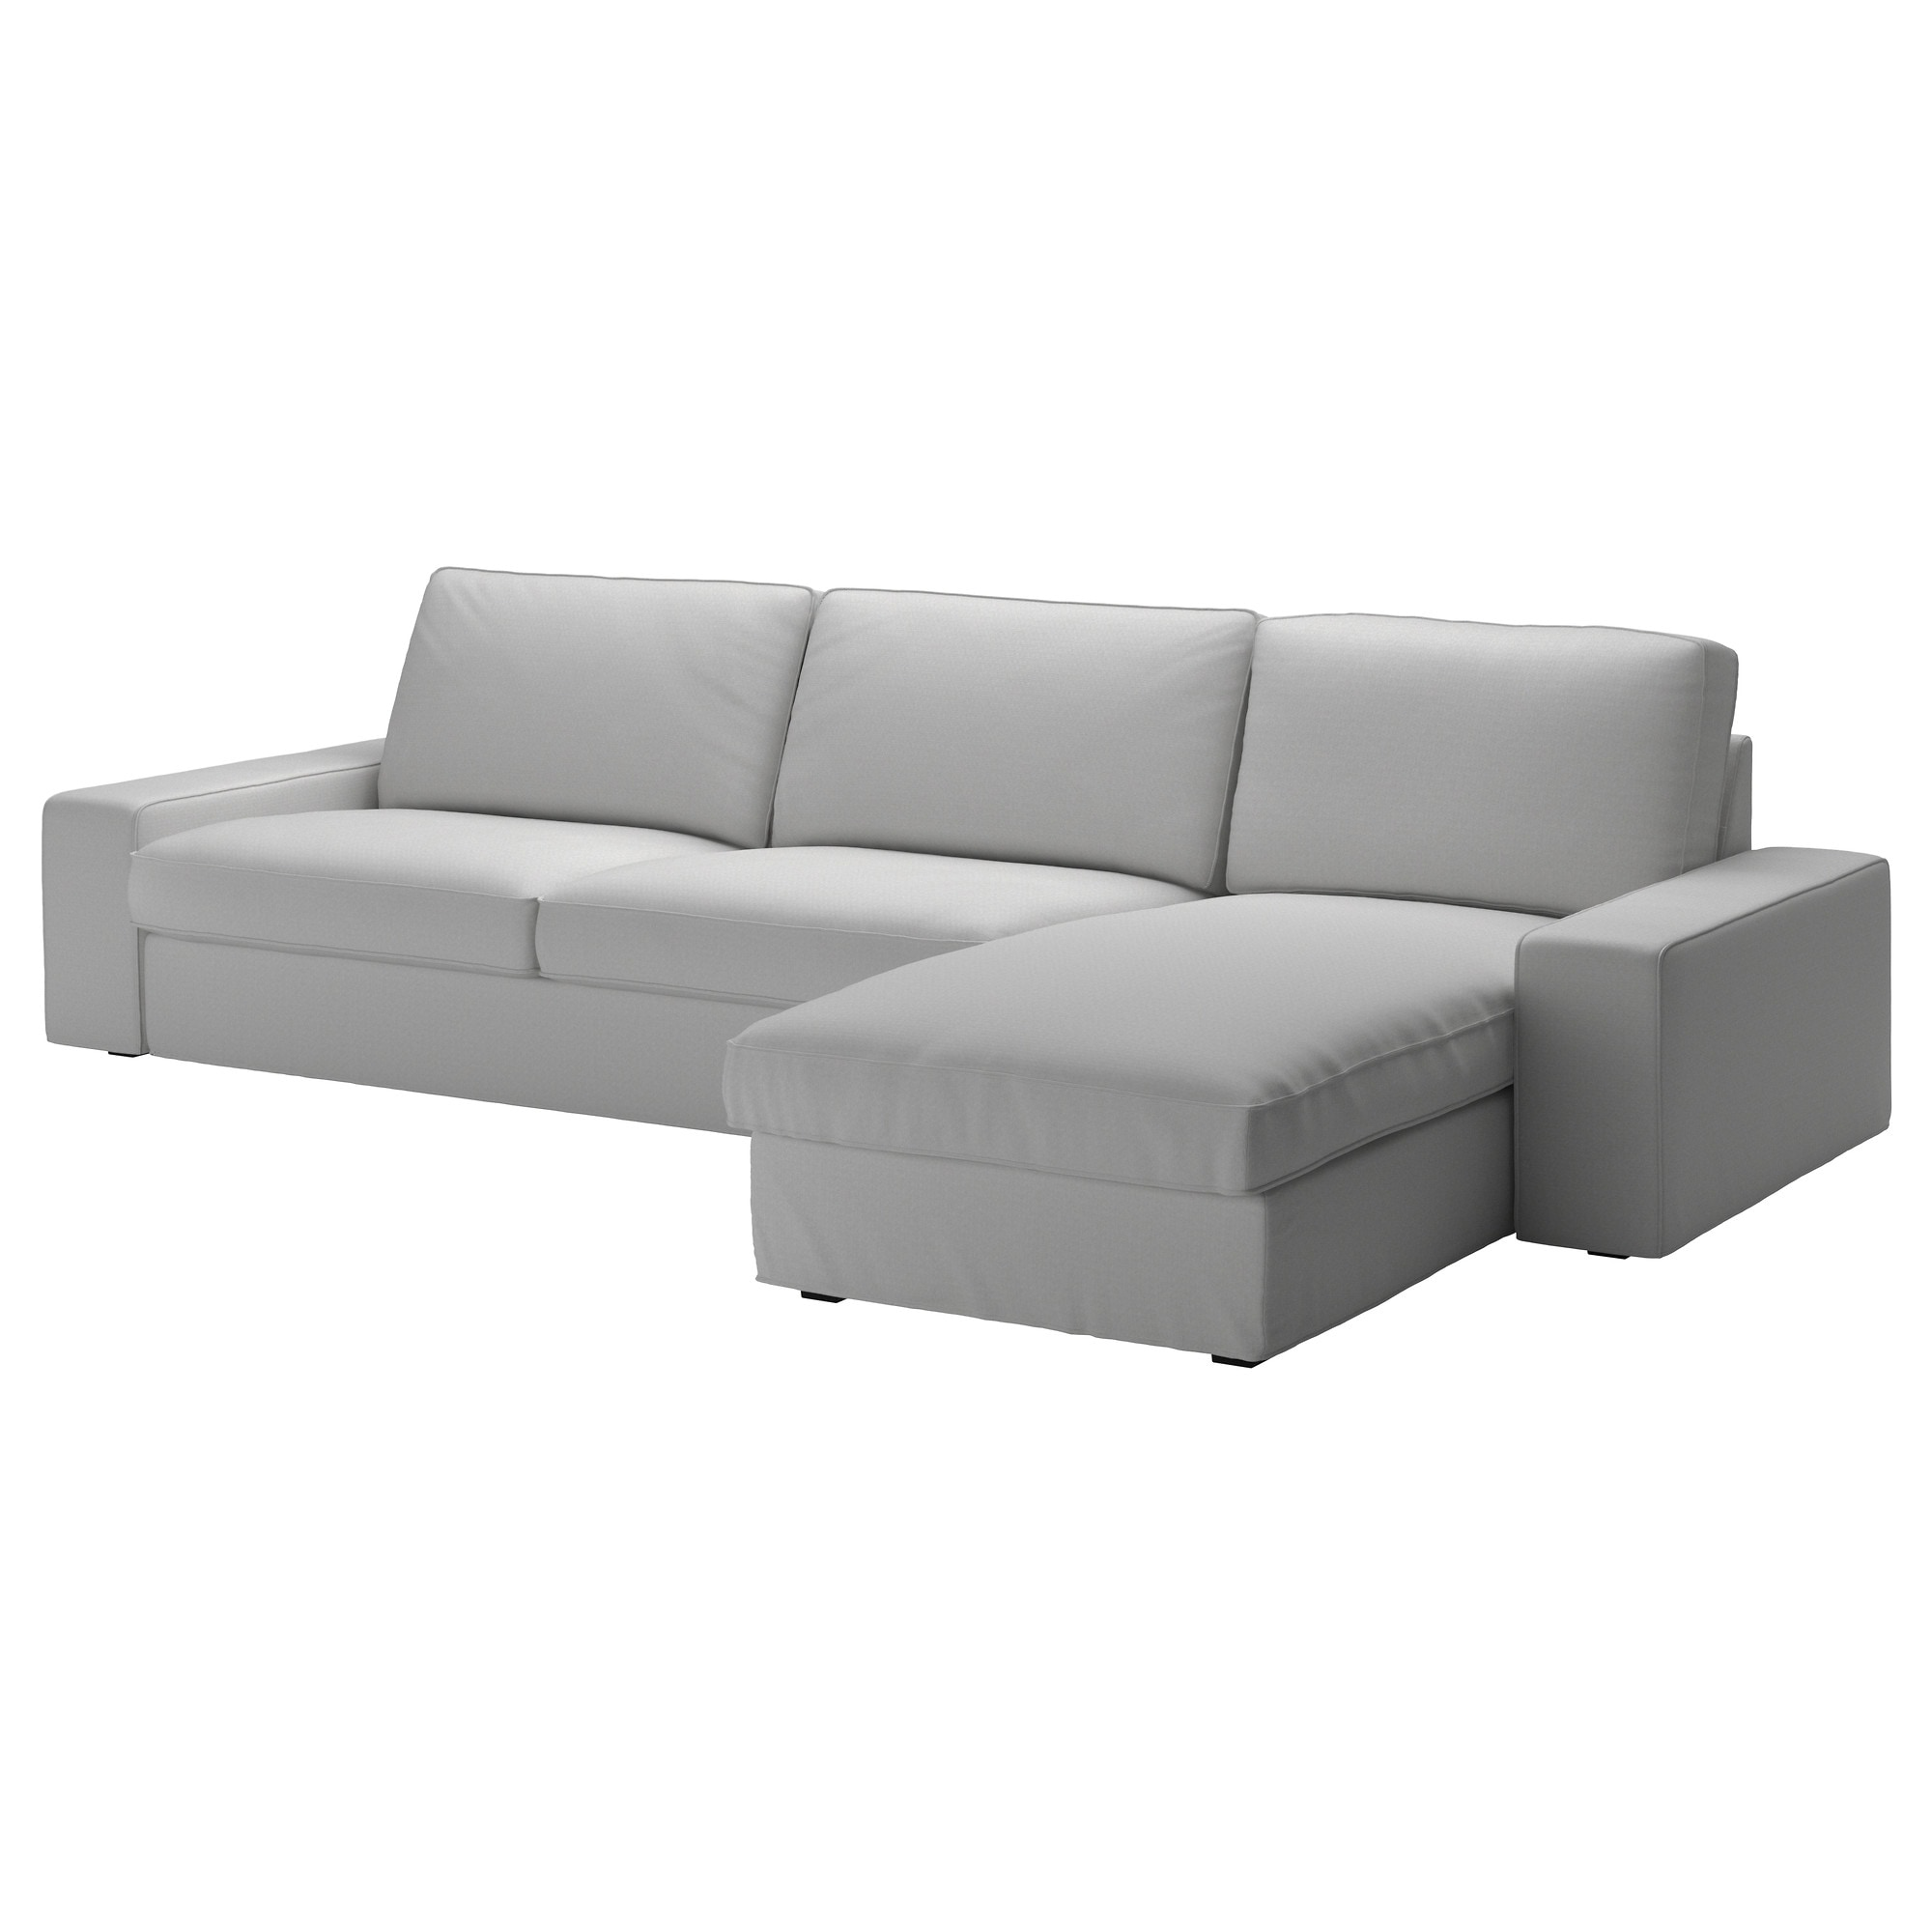 sc 1 st  Ikea : ikea sectional couch - Sectionals, Sofas & Couches